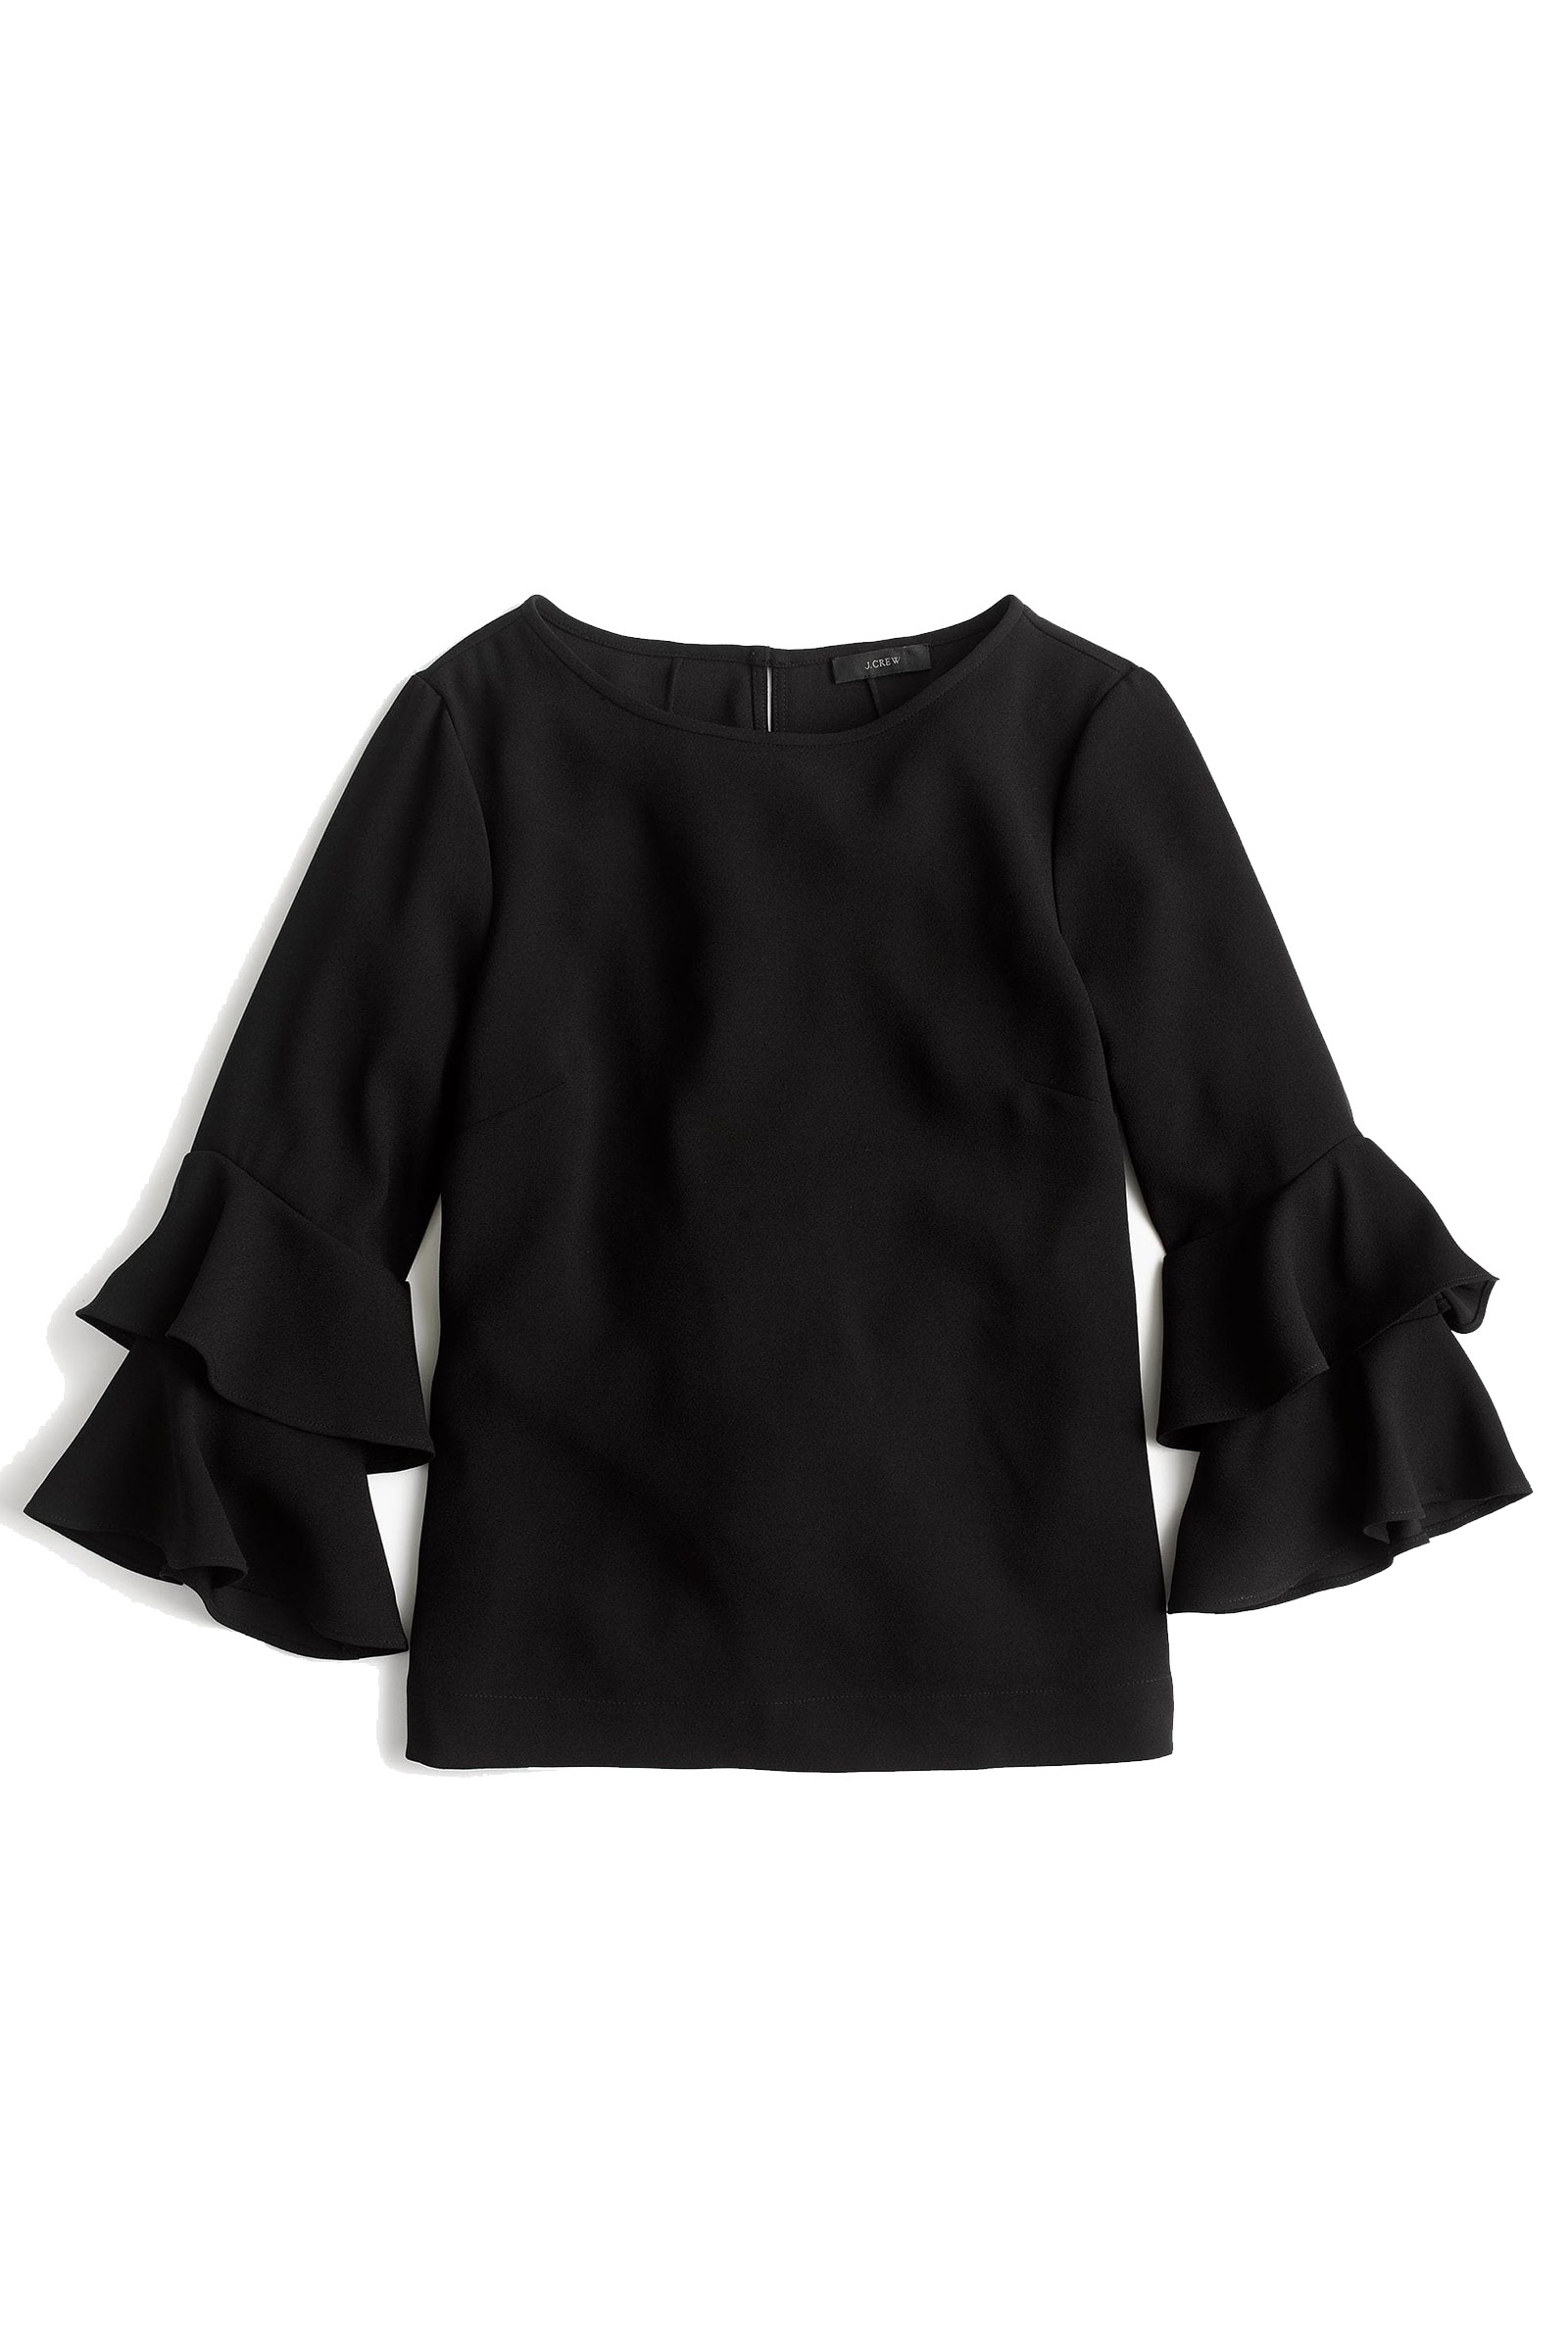 Click to Buy J. Crew Top